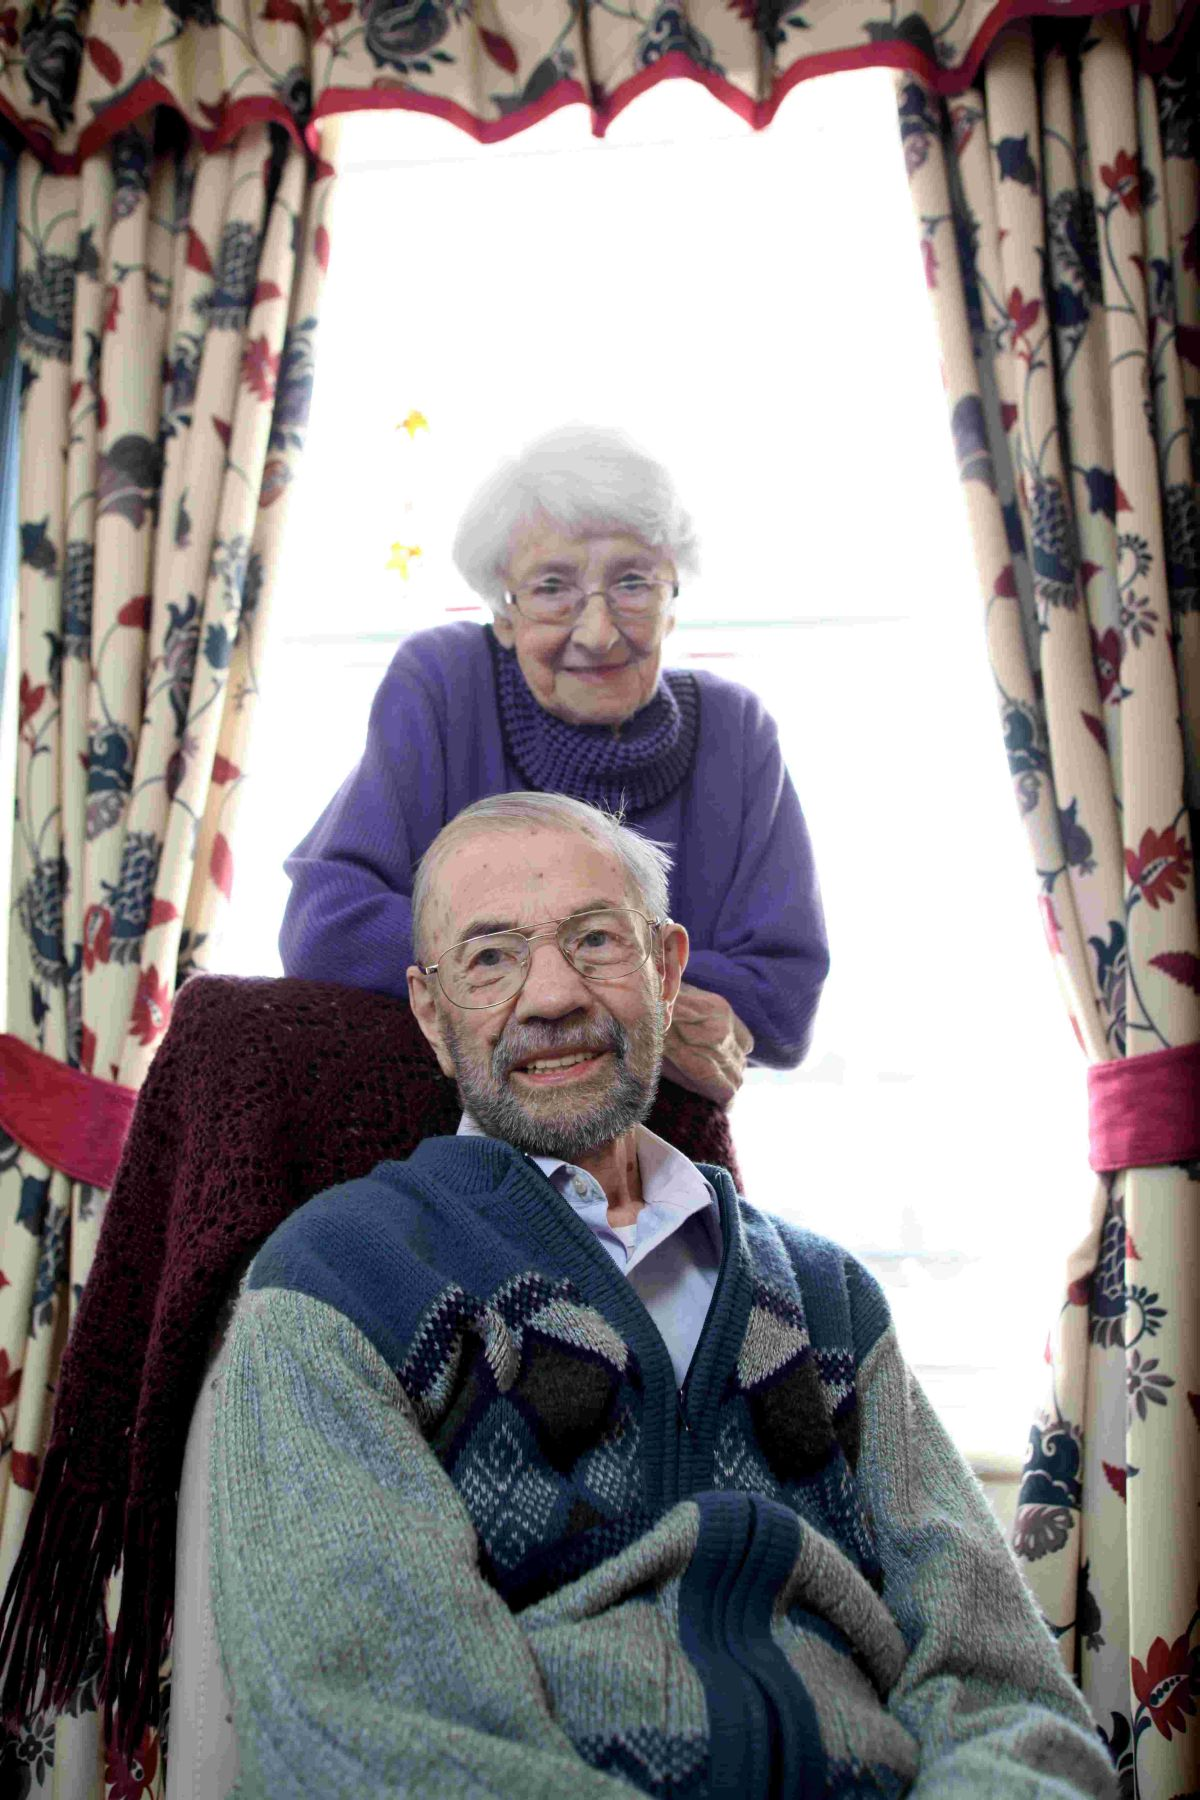 Doug and Betty Hale celebrated their special day at Southgate Street's Devenish House Care Home, where they live, where staff gave them roses and a celebratory lunch to mark the considerable milestone